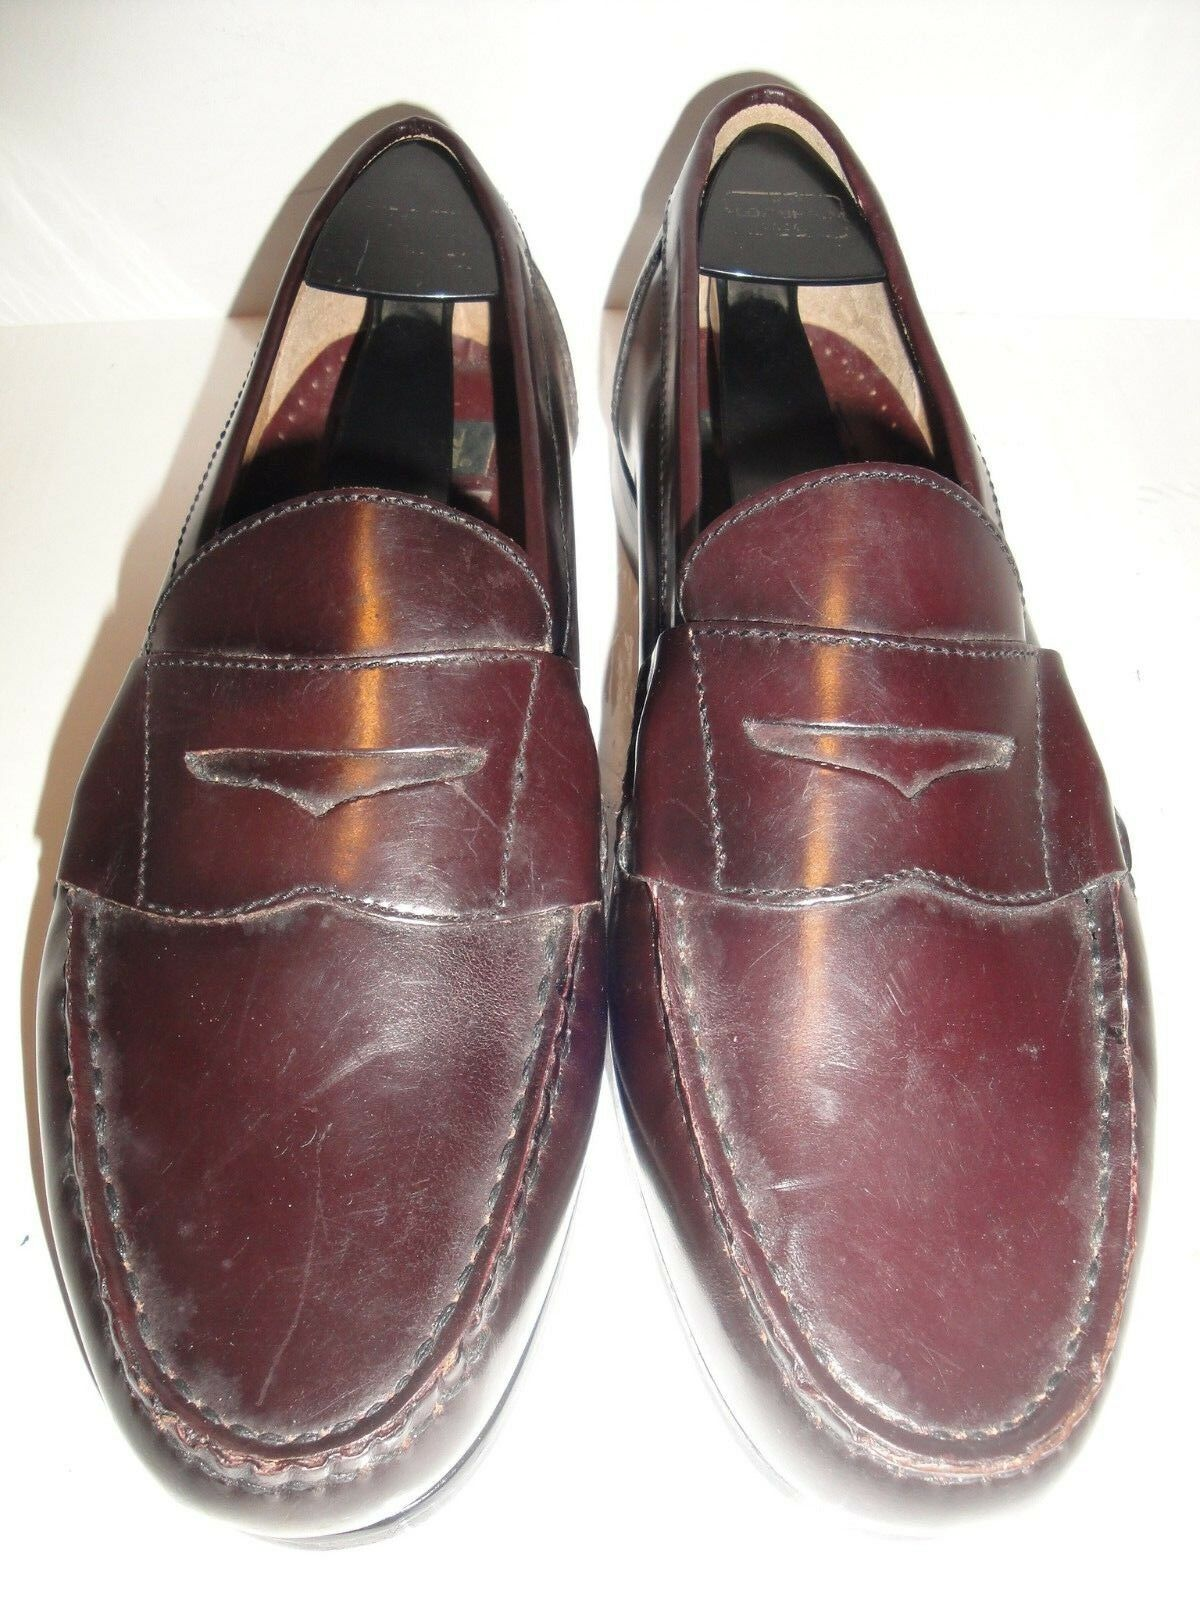 Nunn Bush Burgundy Leather Penny Loafer Men's shoes Size 8.5M